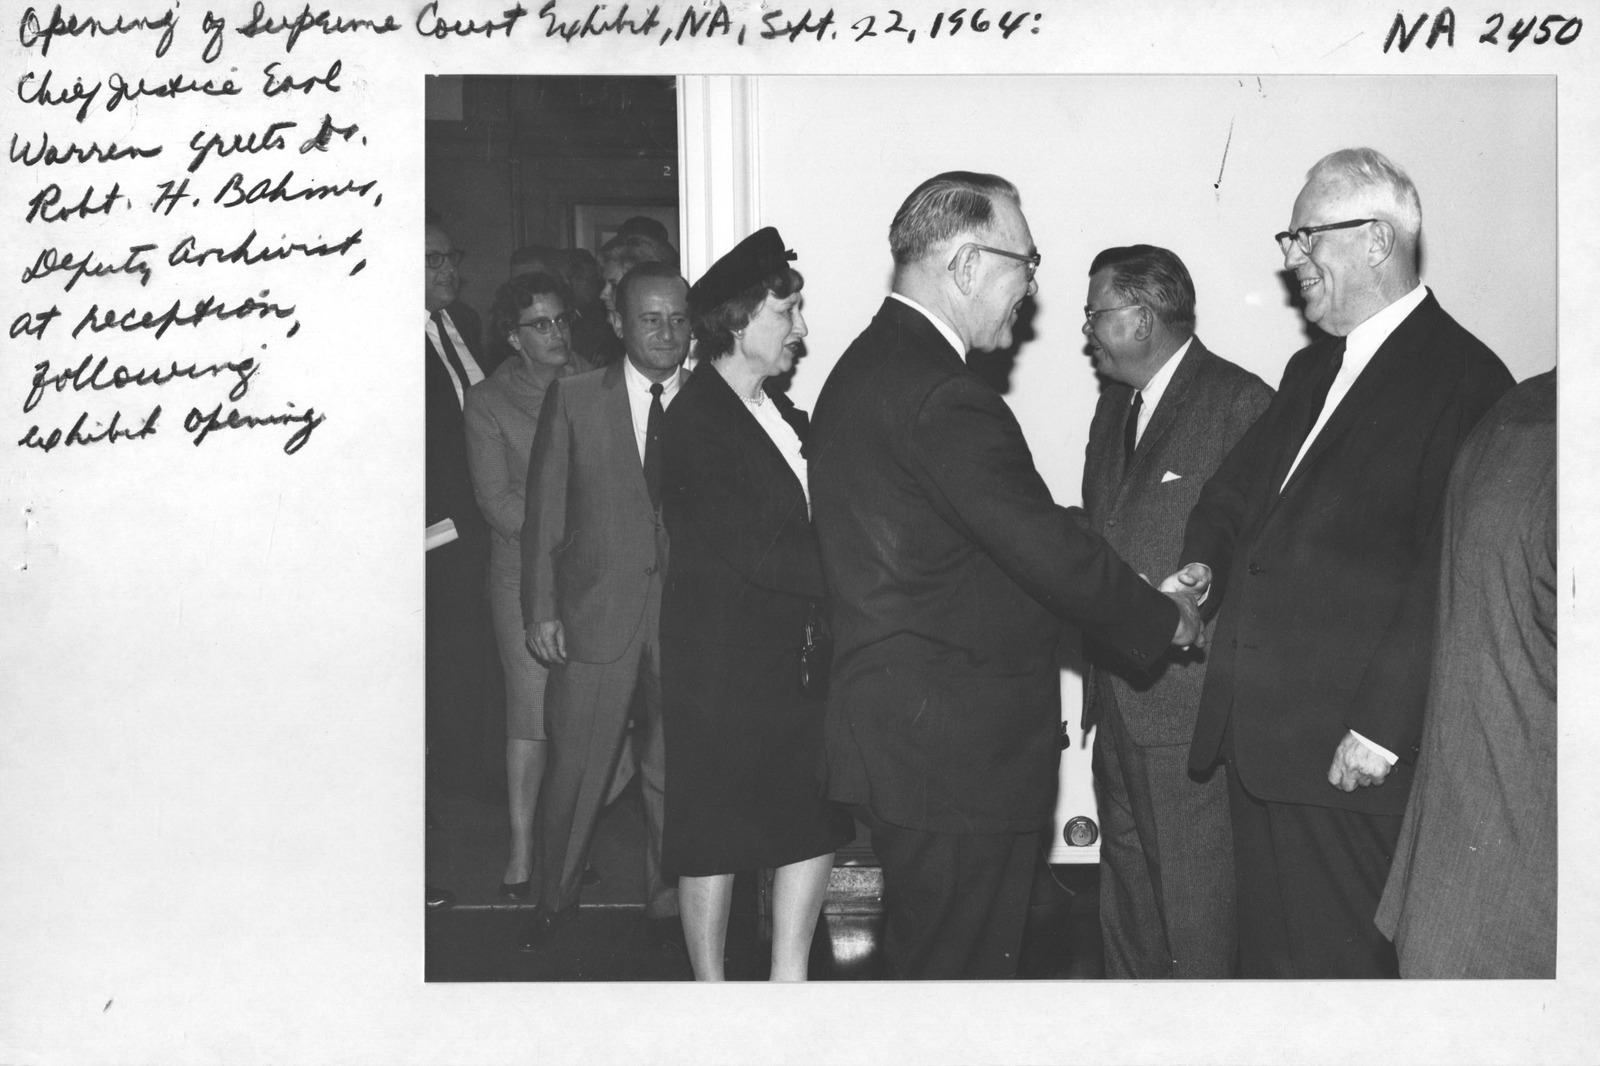 01257a0f2 photograph-of-opening-of-supreme-court-exhibit-at-the-national-archives -in-76a812-1600.jpg